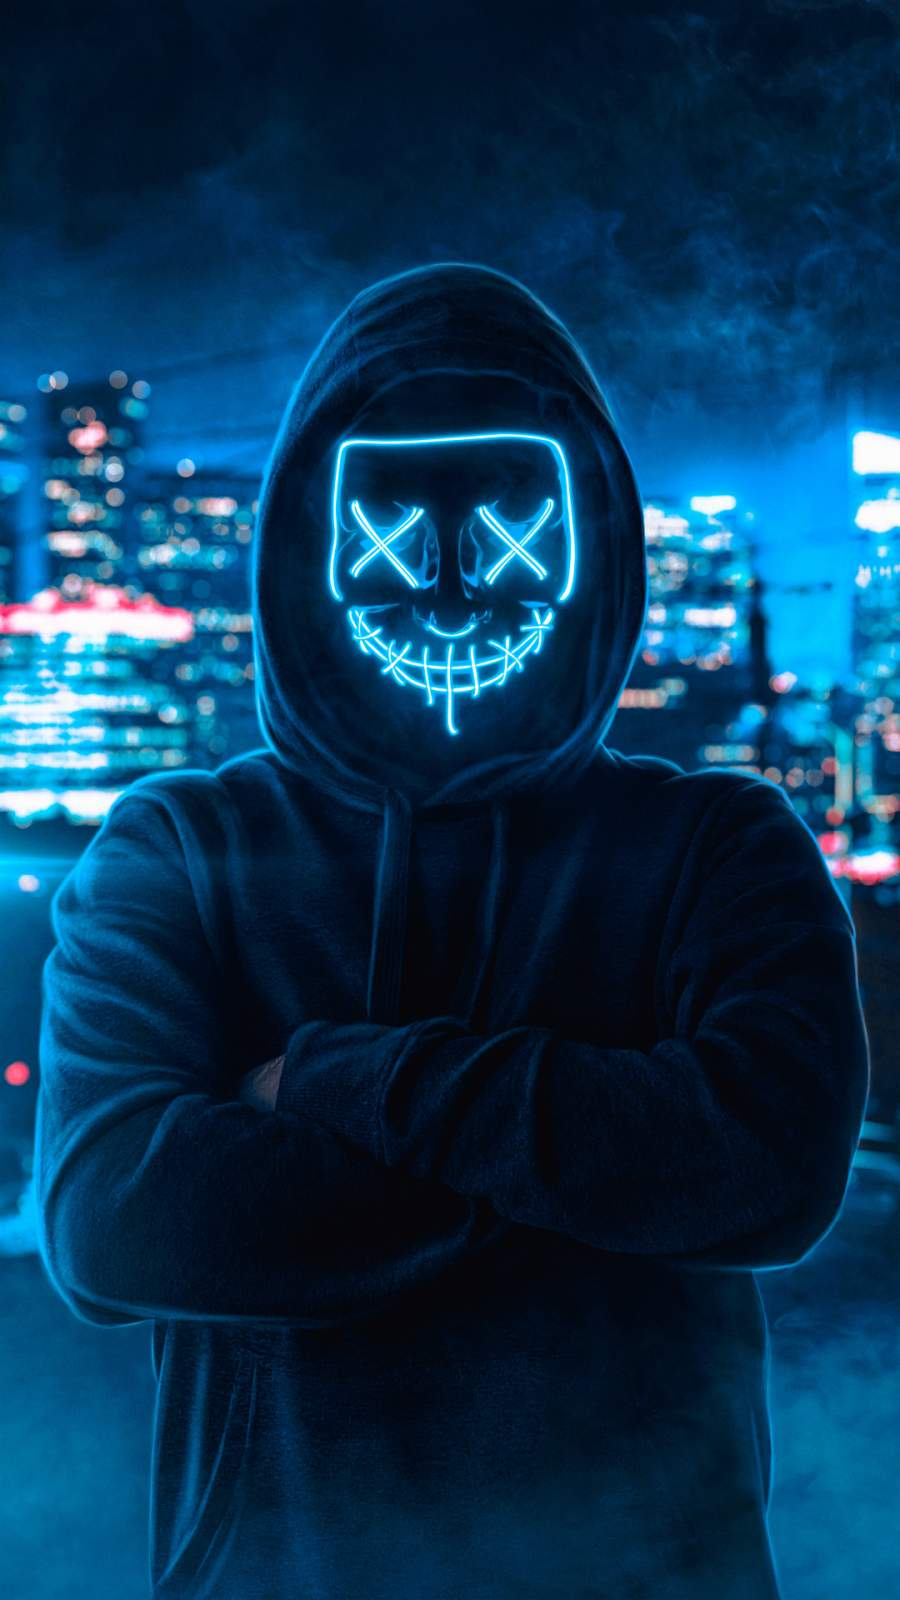 Love Wallpaper For Iphone 5 Neon Mask Hoodie Guy Iphone Wallpaper Iphone Wallpapers